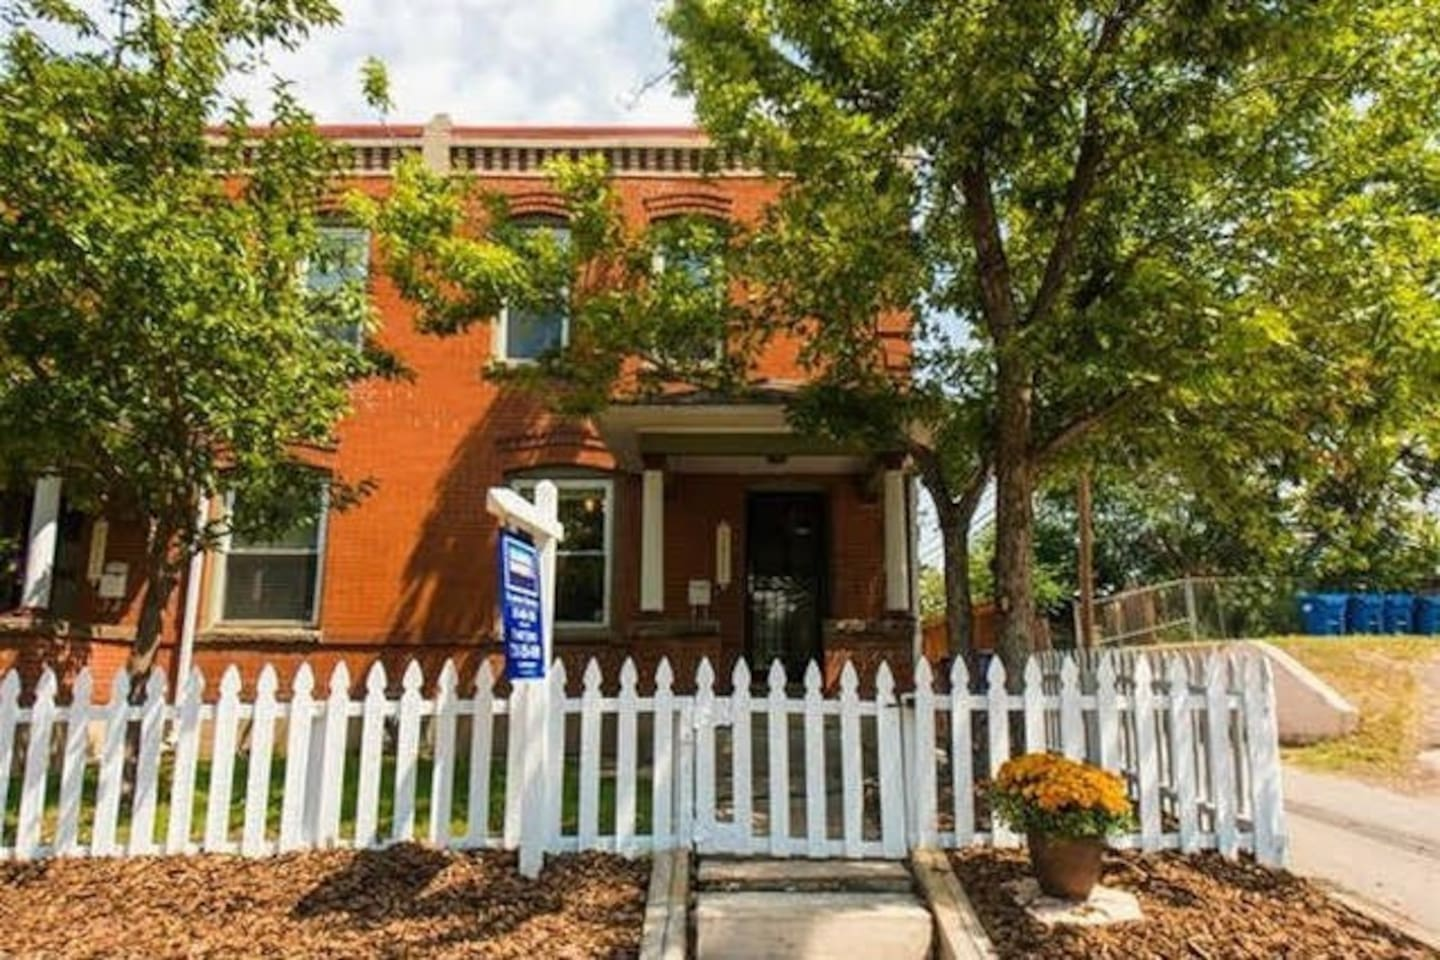 Historic Denver townhouse built in 1910 and update. Incredible location just minutes from downtown.